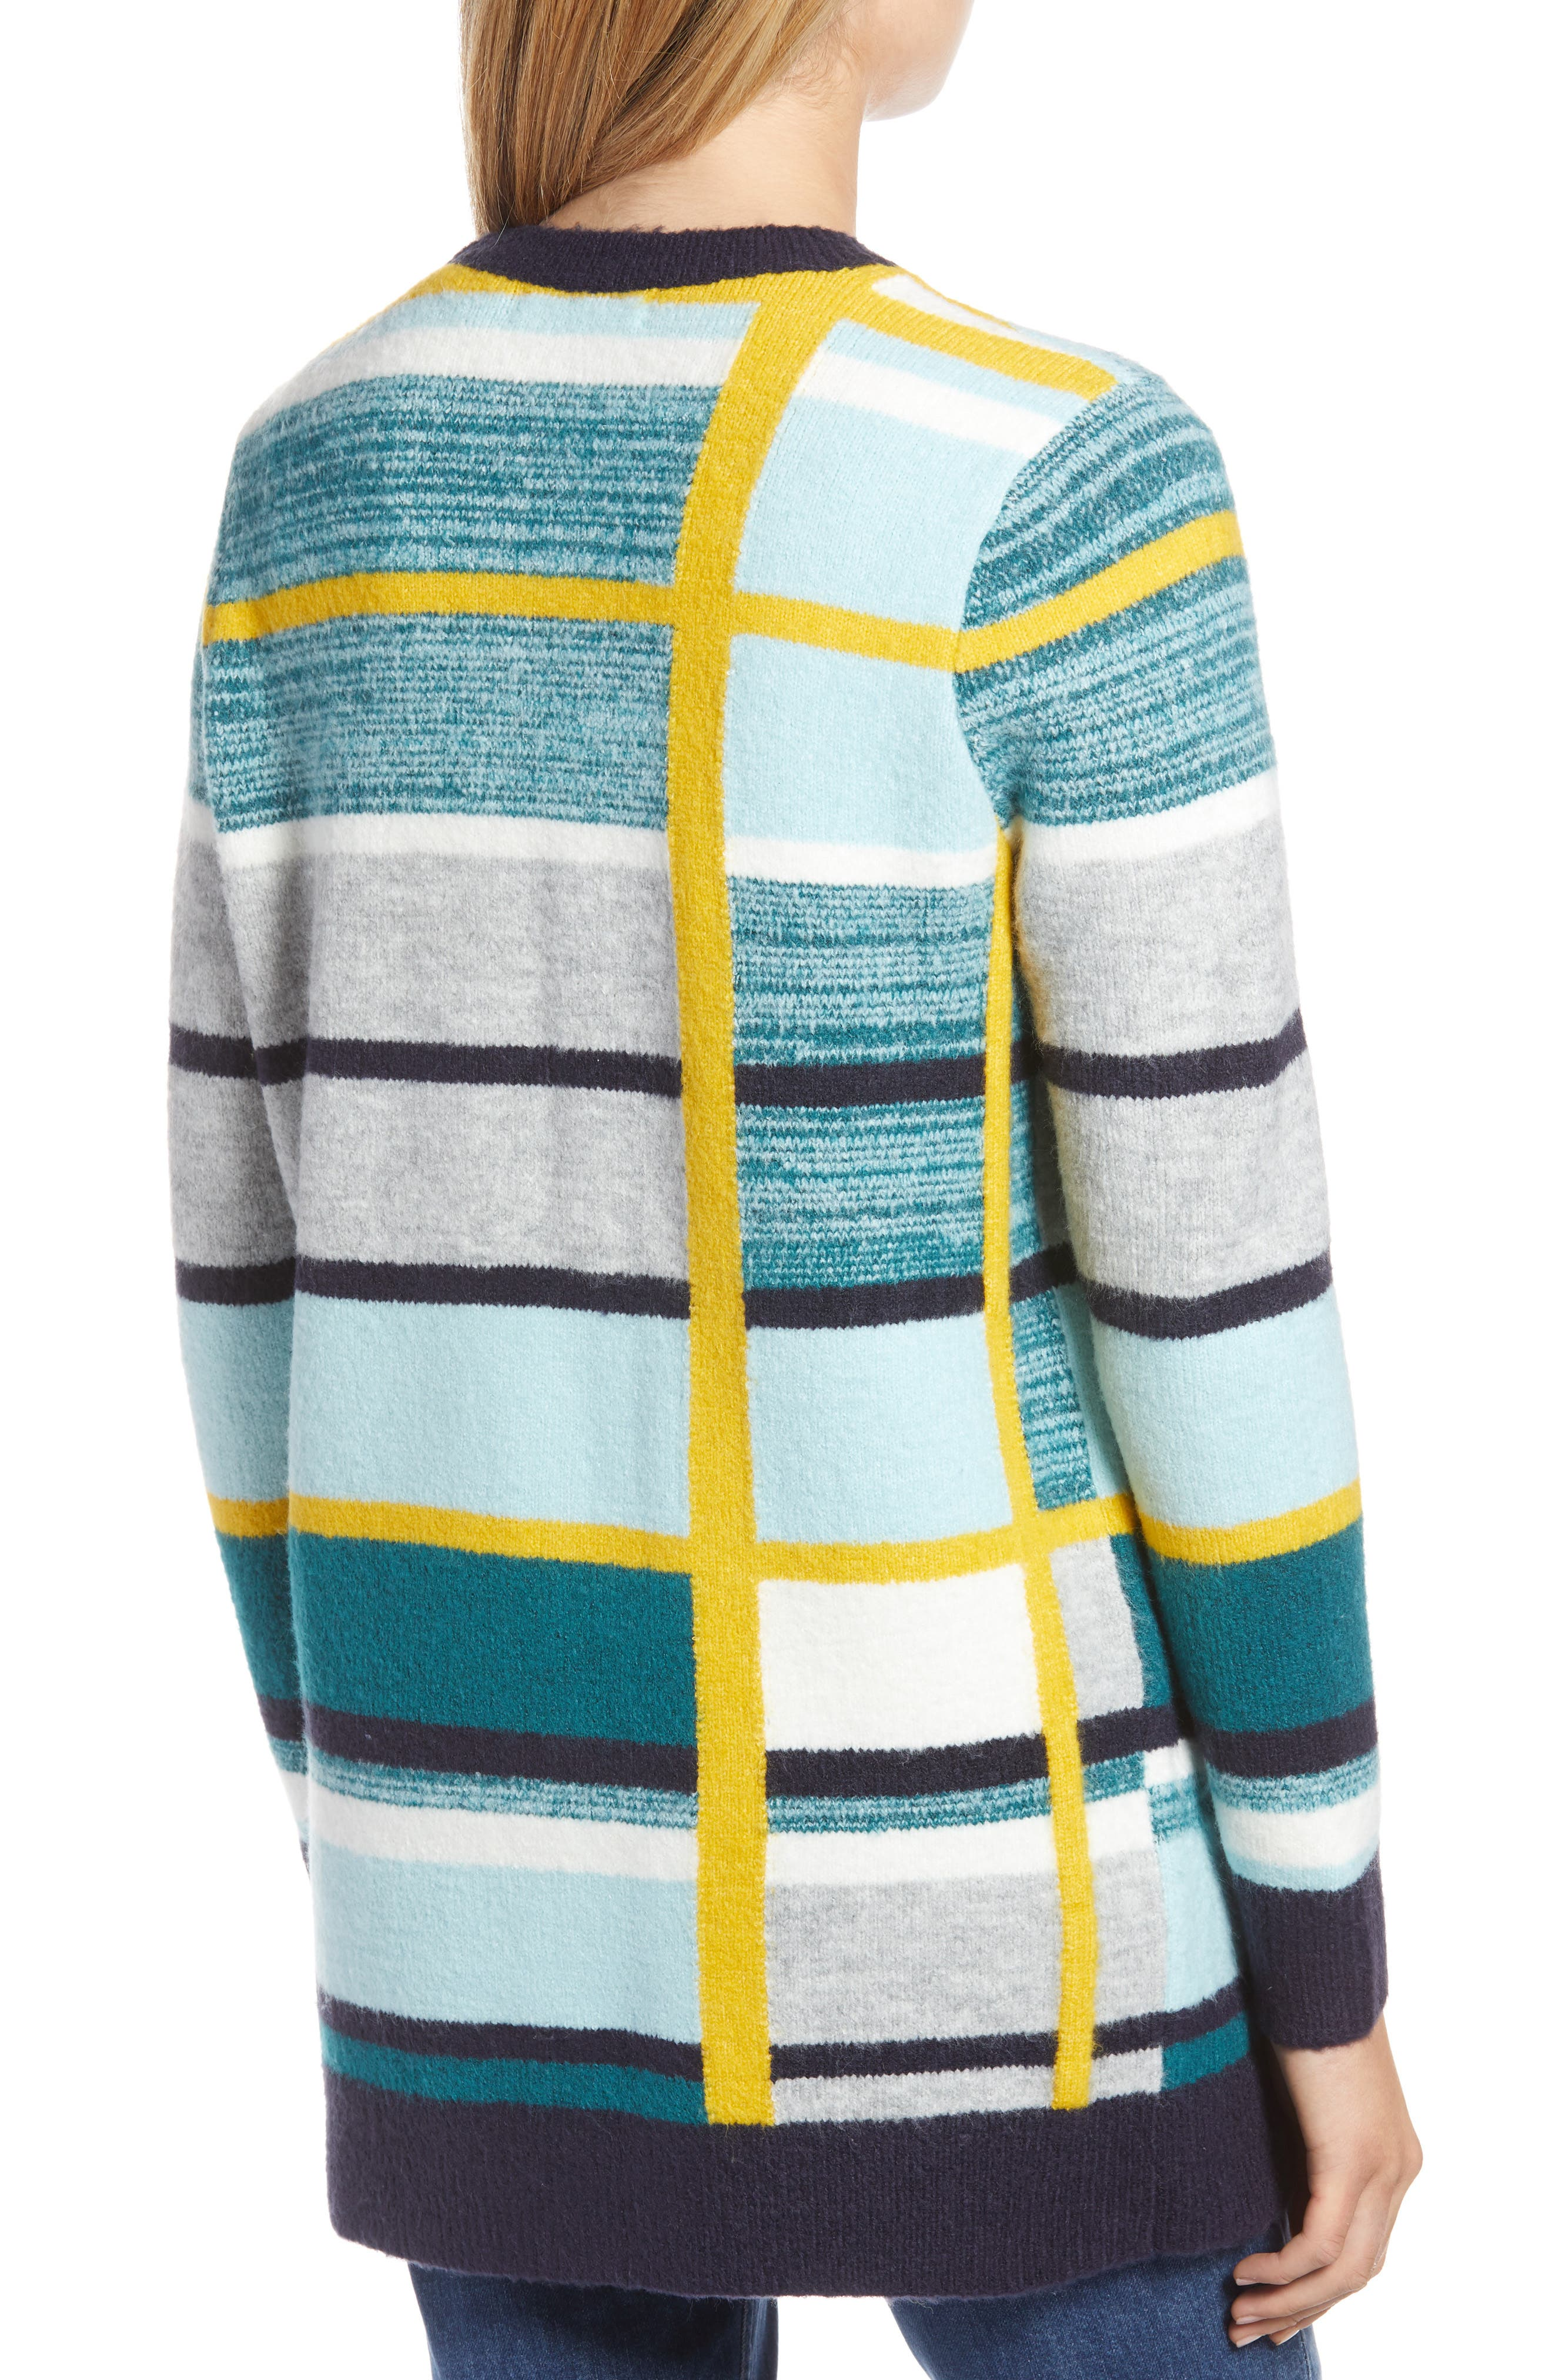 Abstract Plaid Button Front Cardigan Sweater,                             Alternate thumbnail 2, color,                             TEAL ABSTRACT PLAID